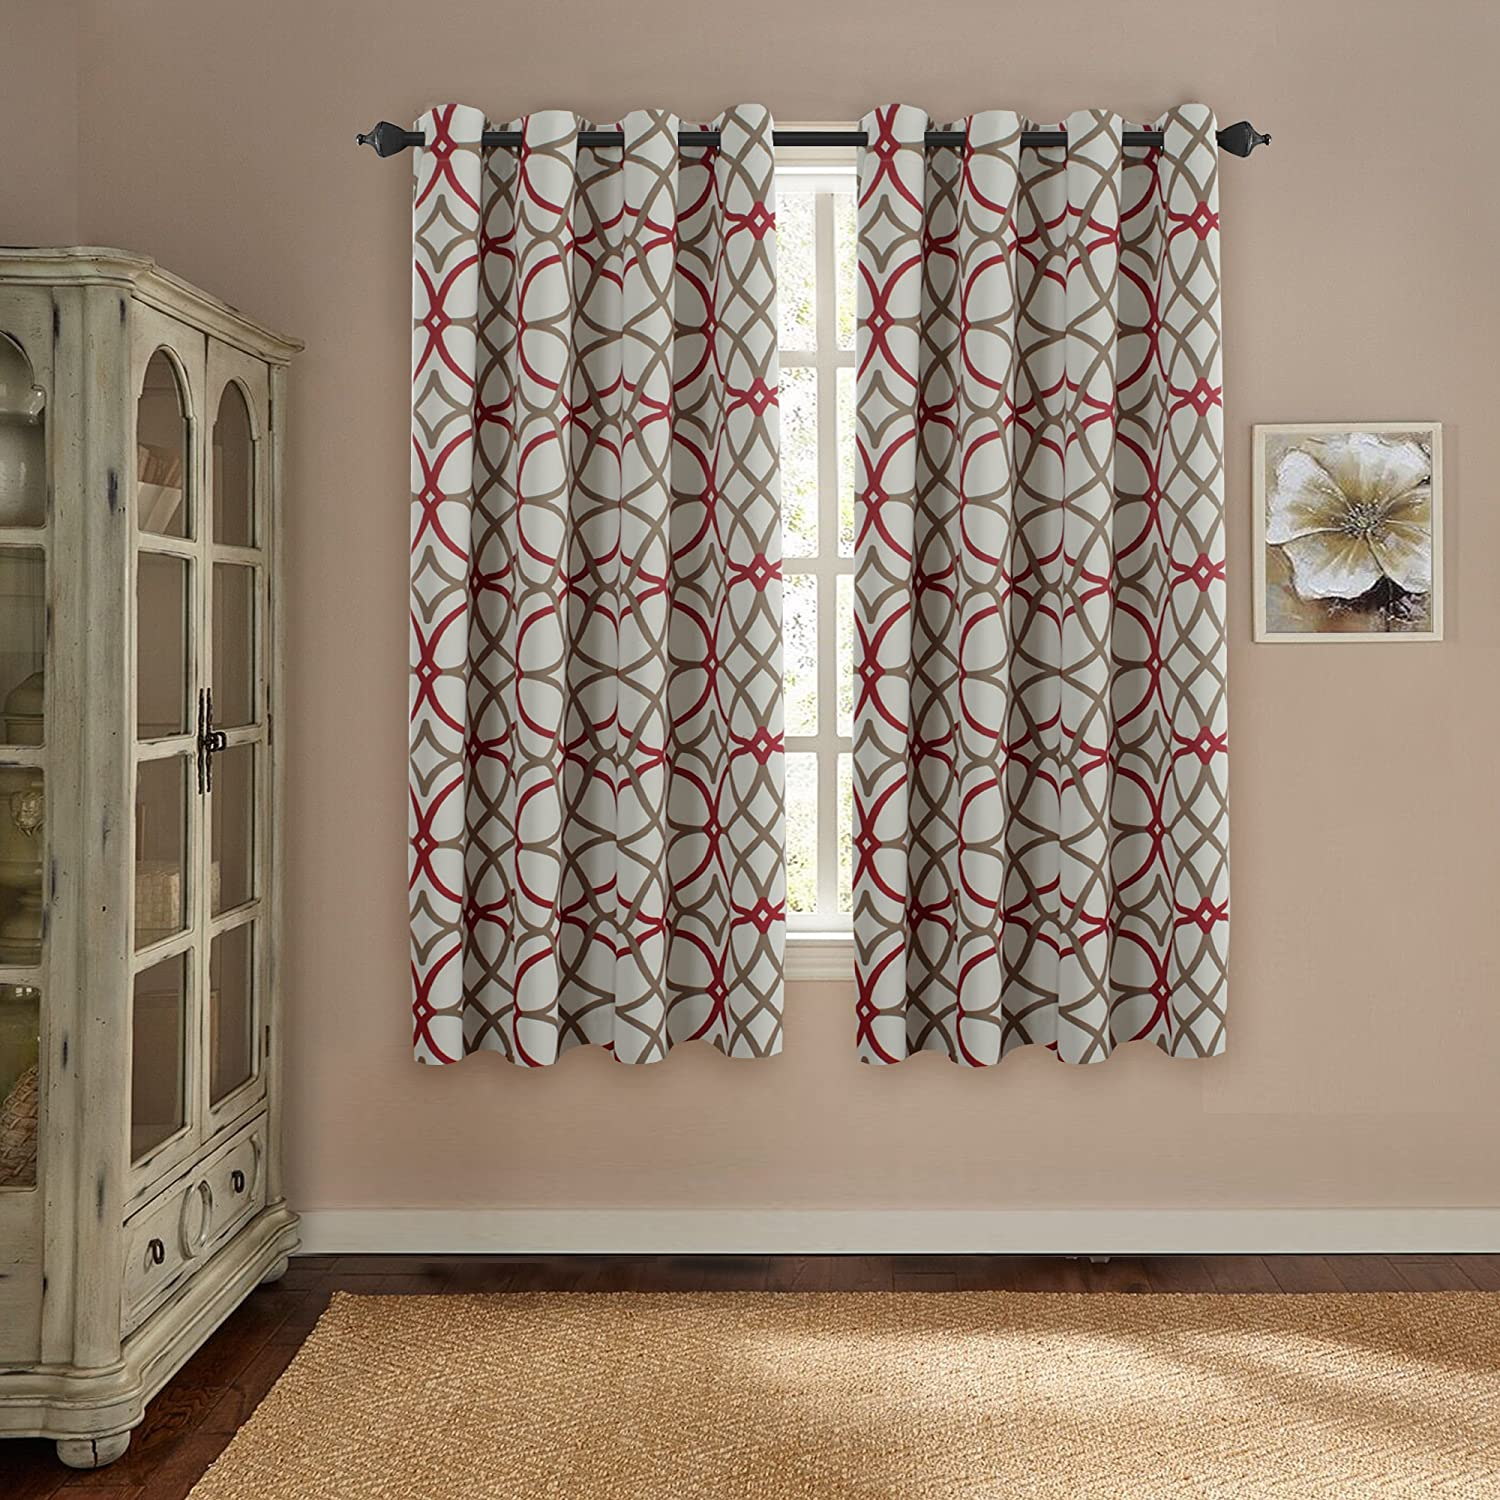 H.Versailtex Thermal Insulated Blackout Window Room Grommet Curtain Drapes